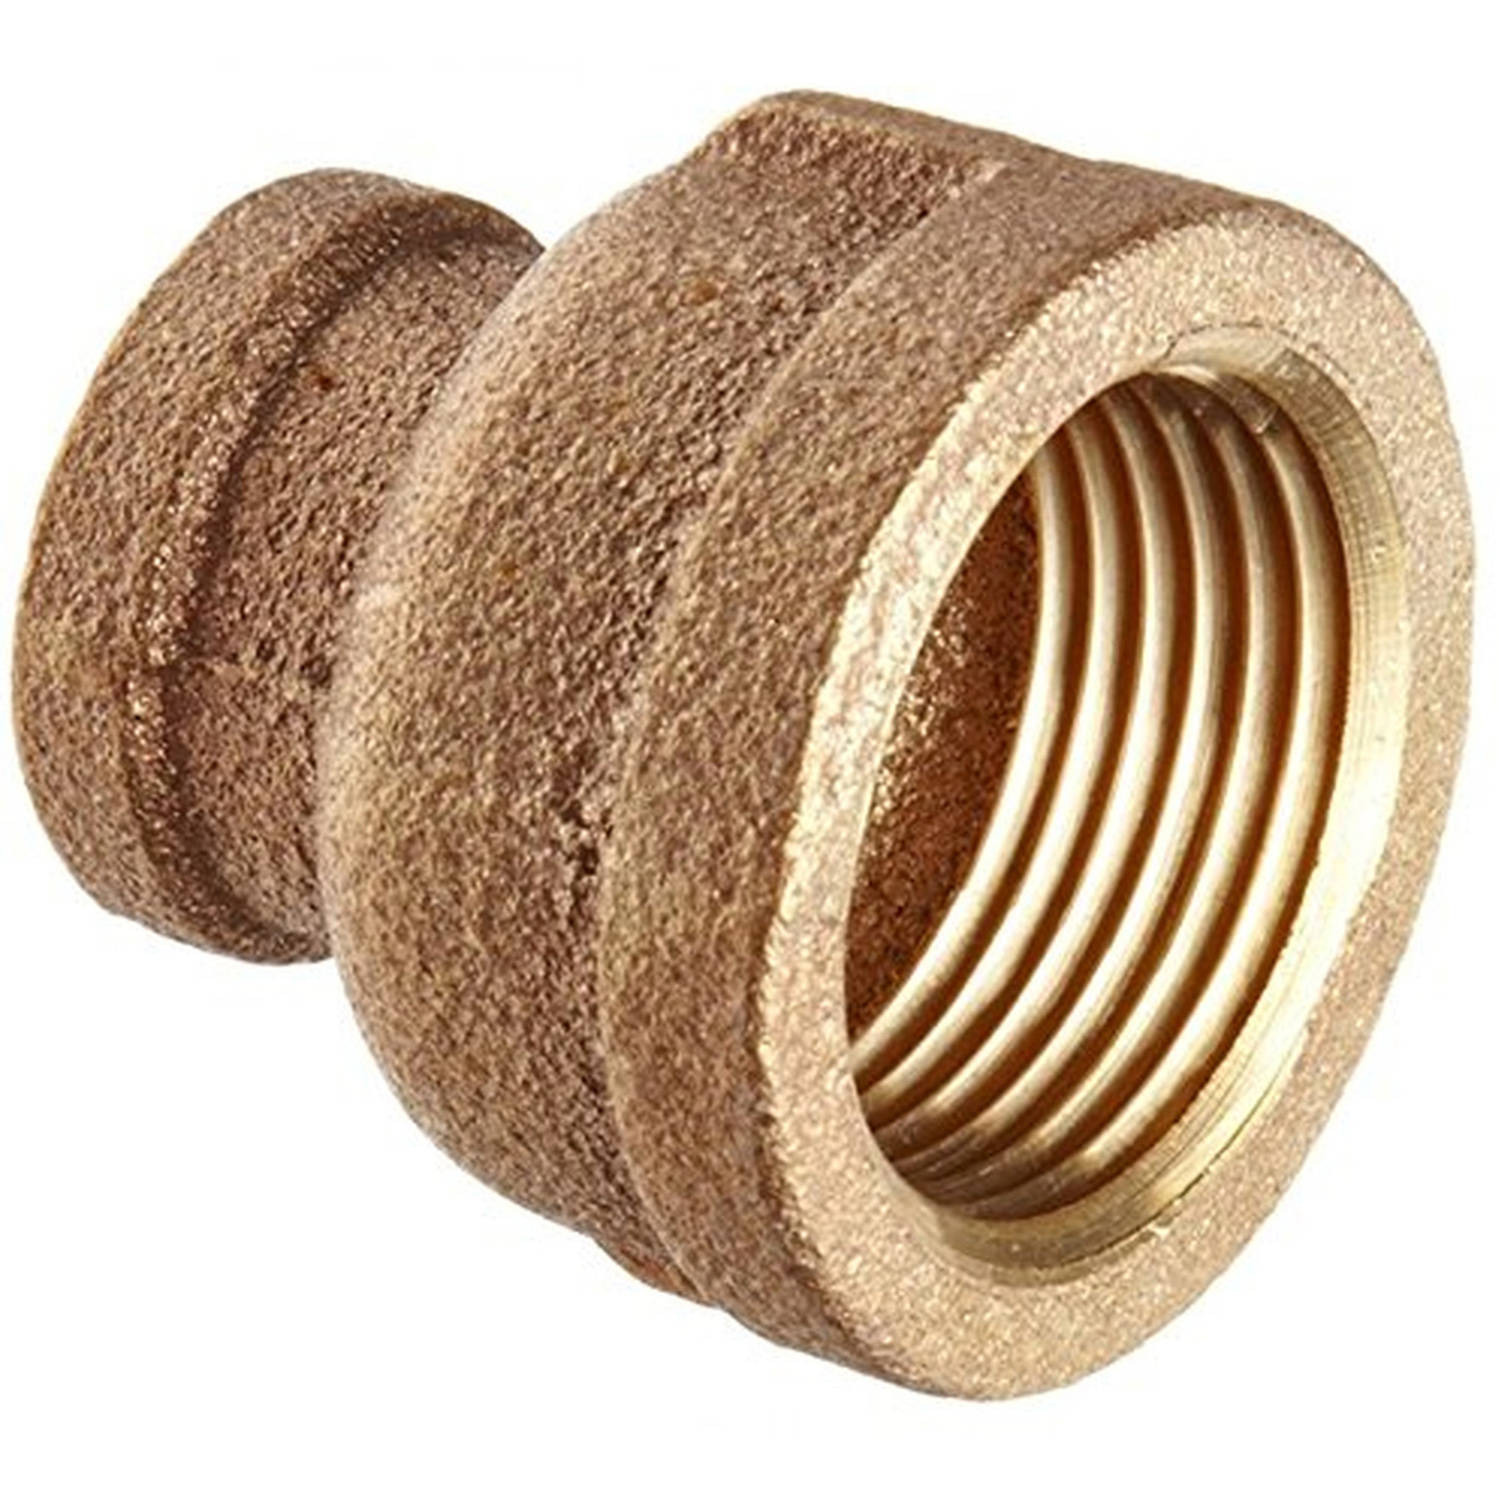 "Everflow Supplies BRRC1002-NL 1"" x 3/4"" Brass Reducing Coupling, Lead Free"